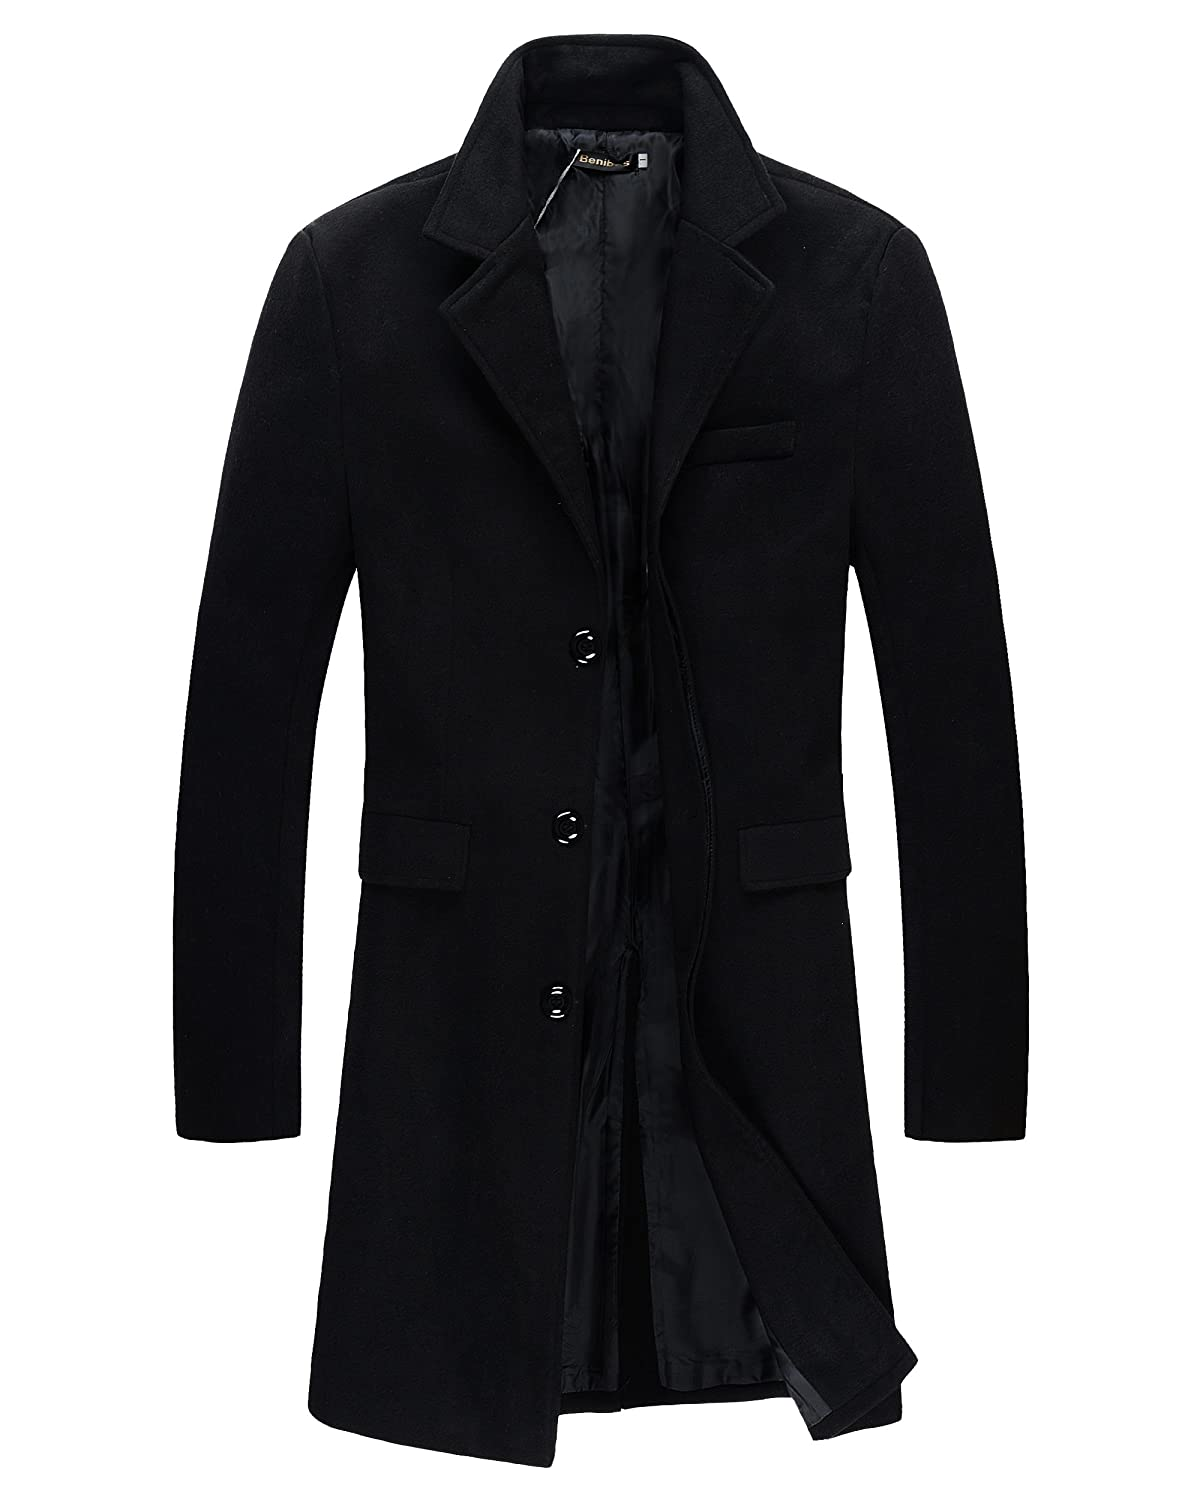 Benibos Mens Trench Coat Autumn Winter Long Jacket Overcoat